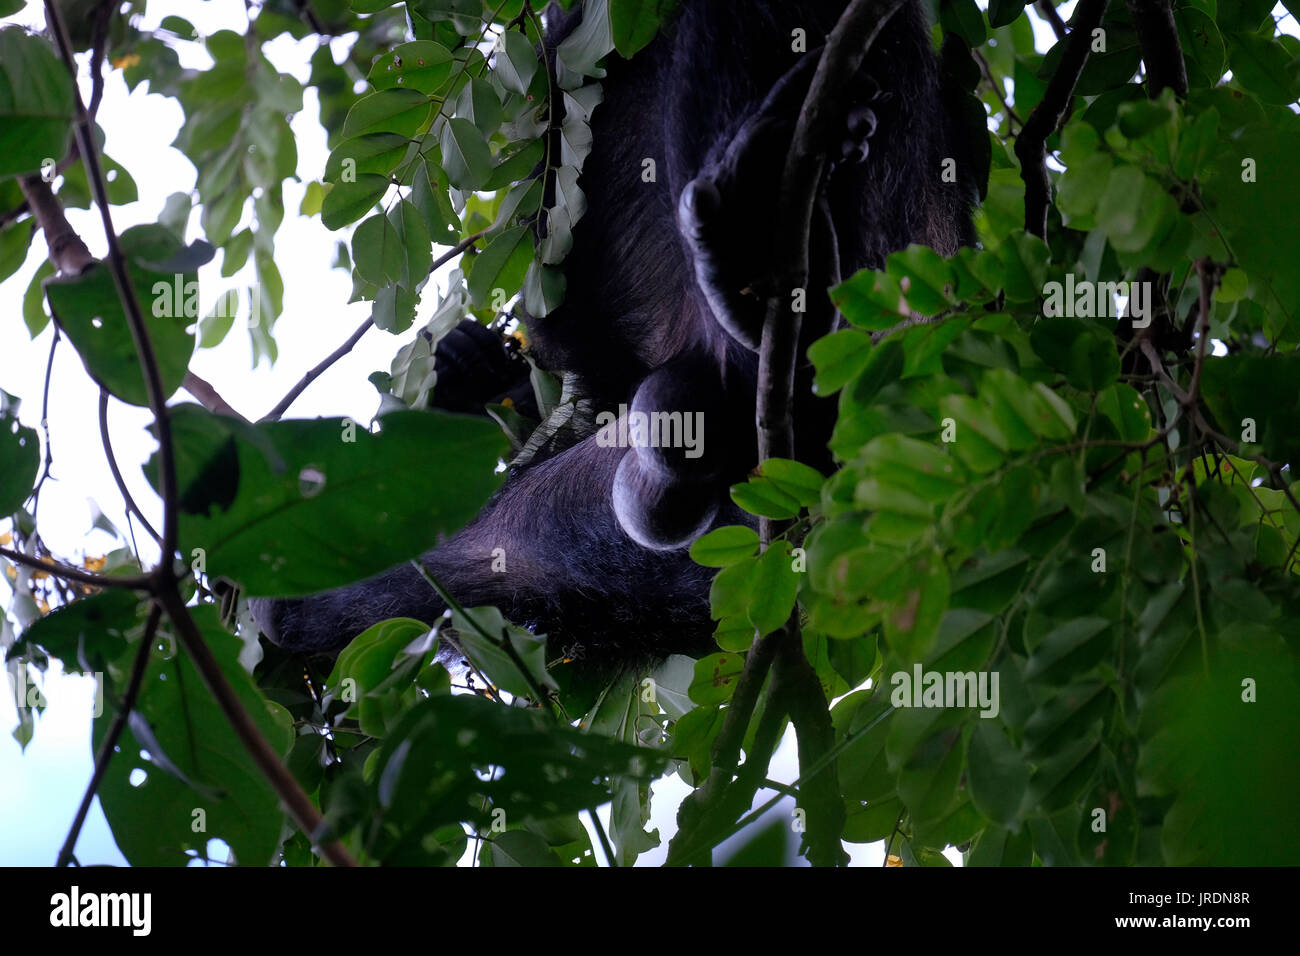 Genitals of a wild chimpanzee of the Kasakela chimpanzee community is observed in Gombe Stream National Park located at the shore of Tanganyika lake in west-central Tanzania Eastern Africa - Stock Image